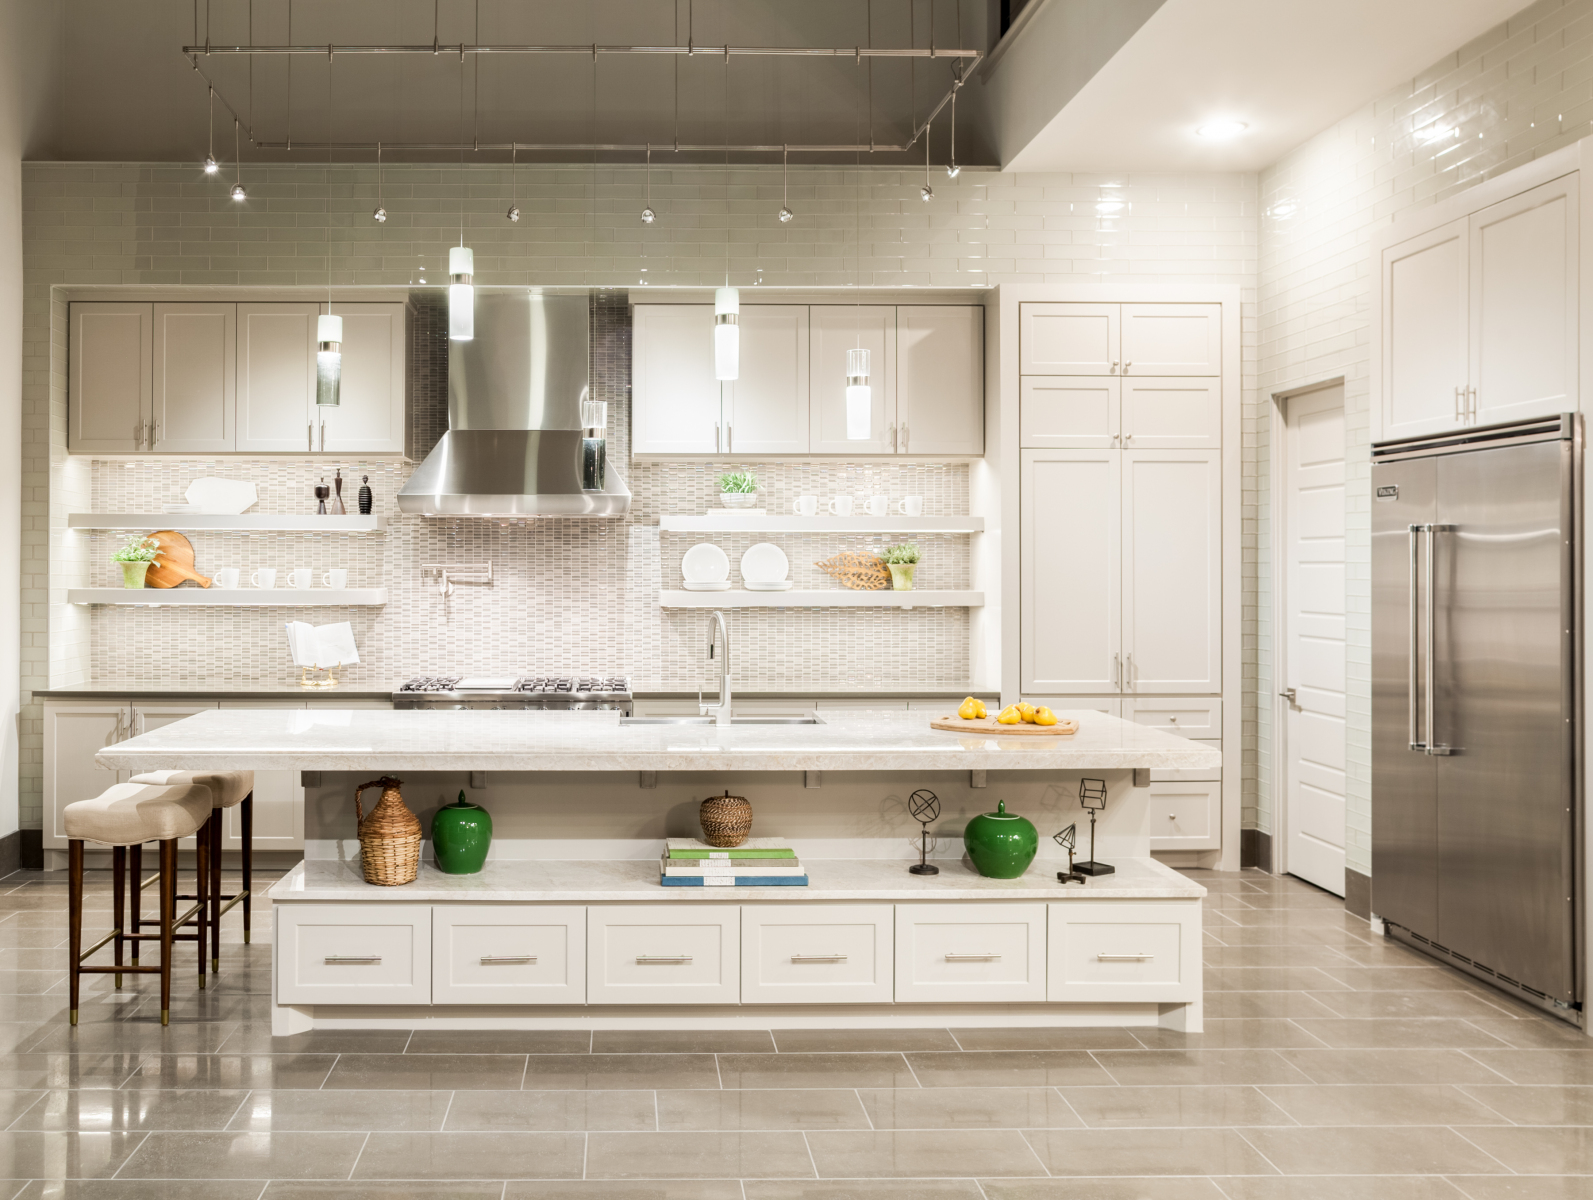 Charima Design Group - Campbell